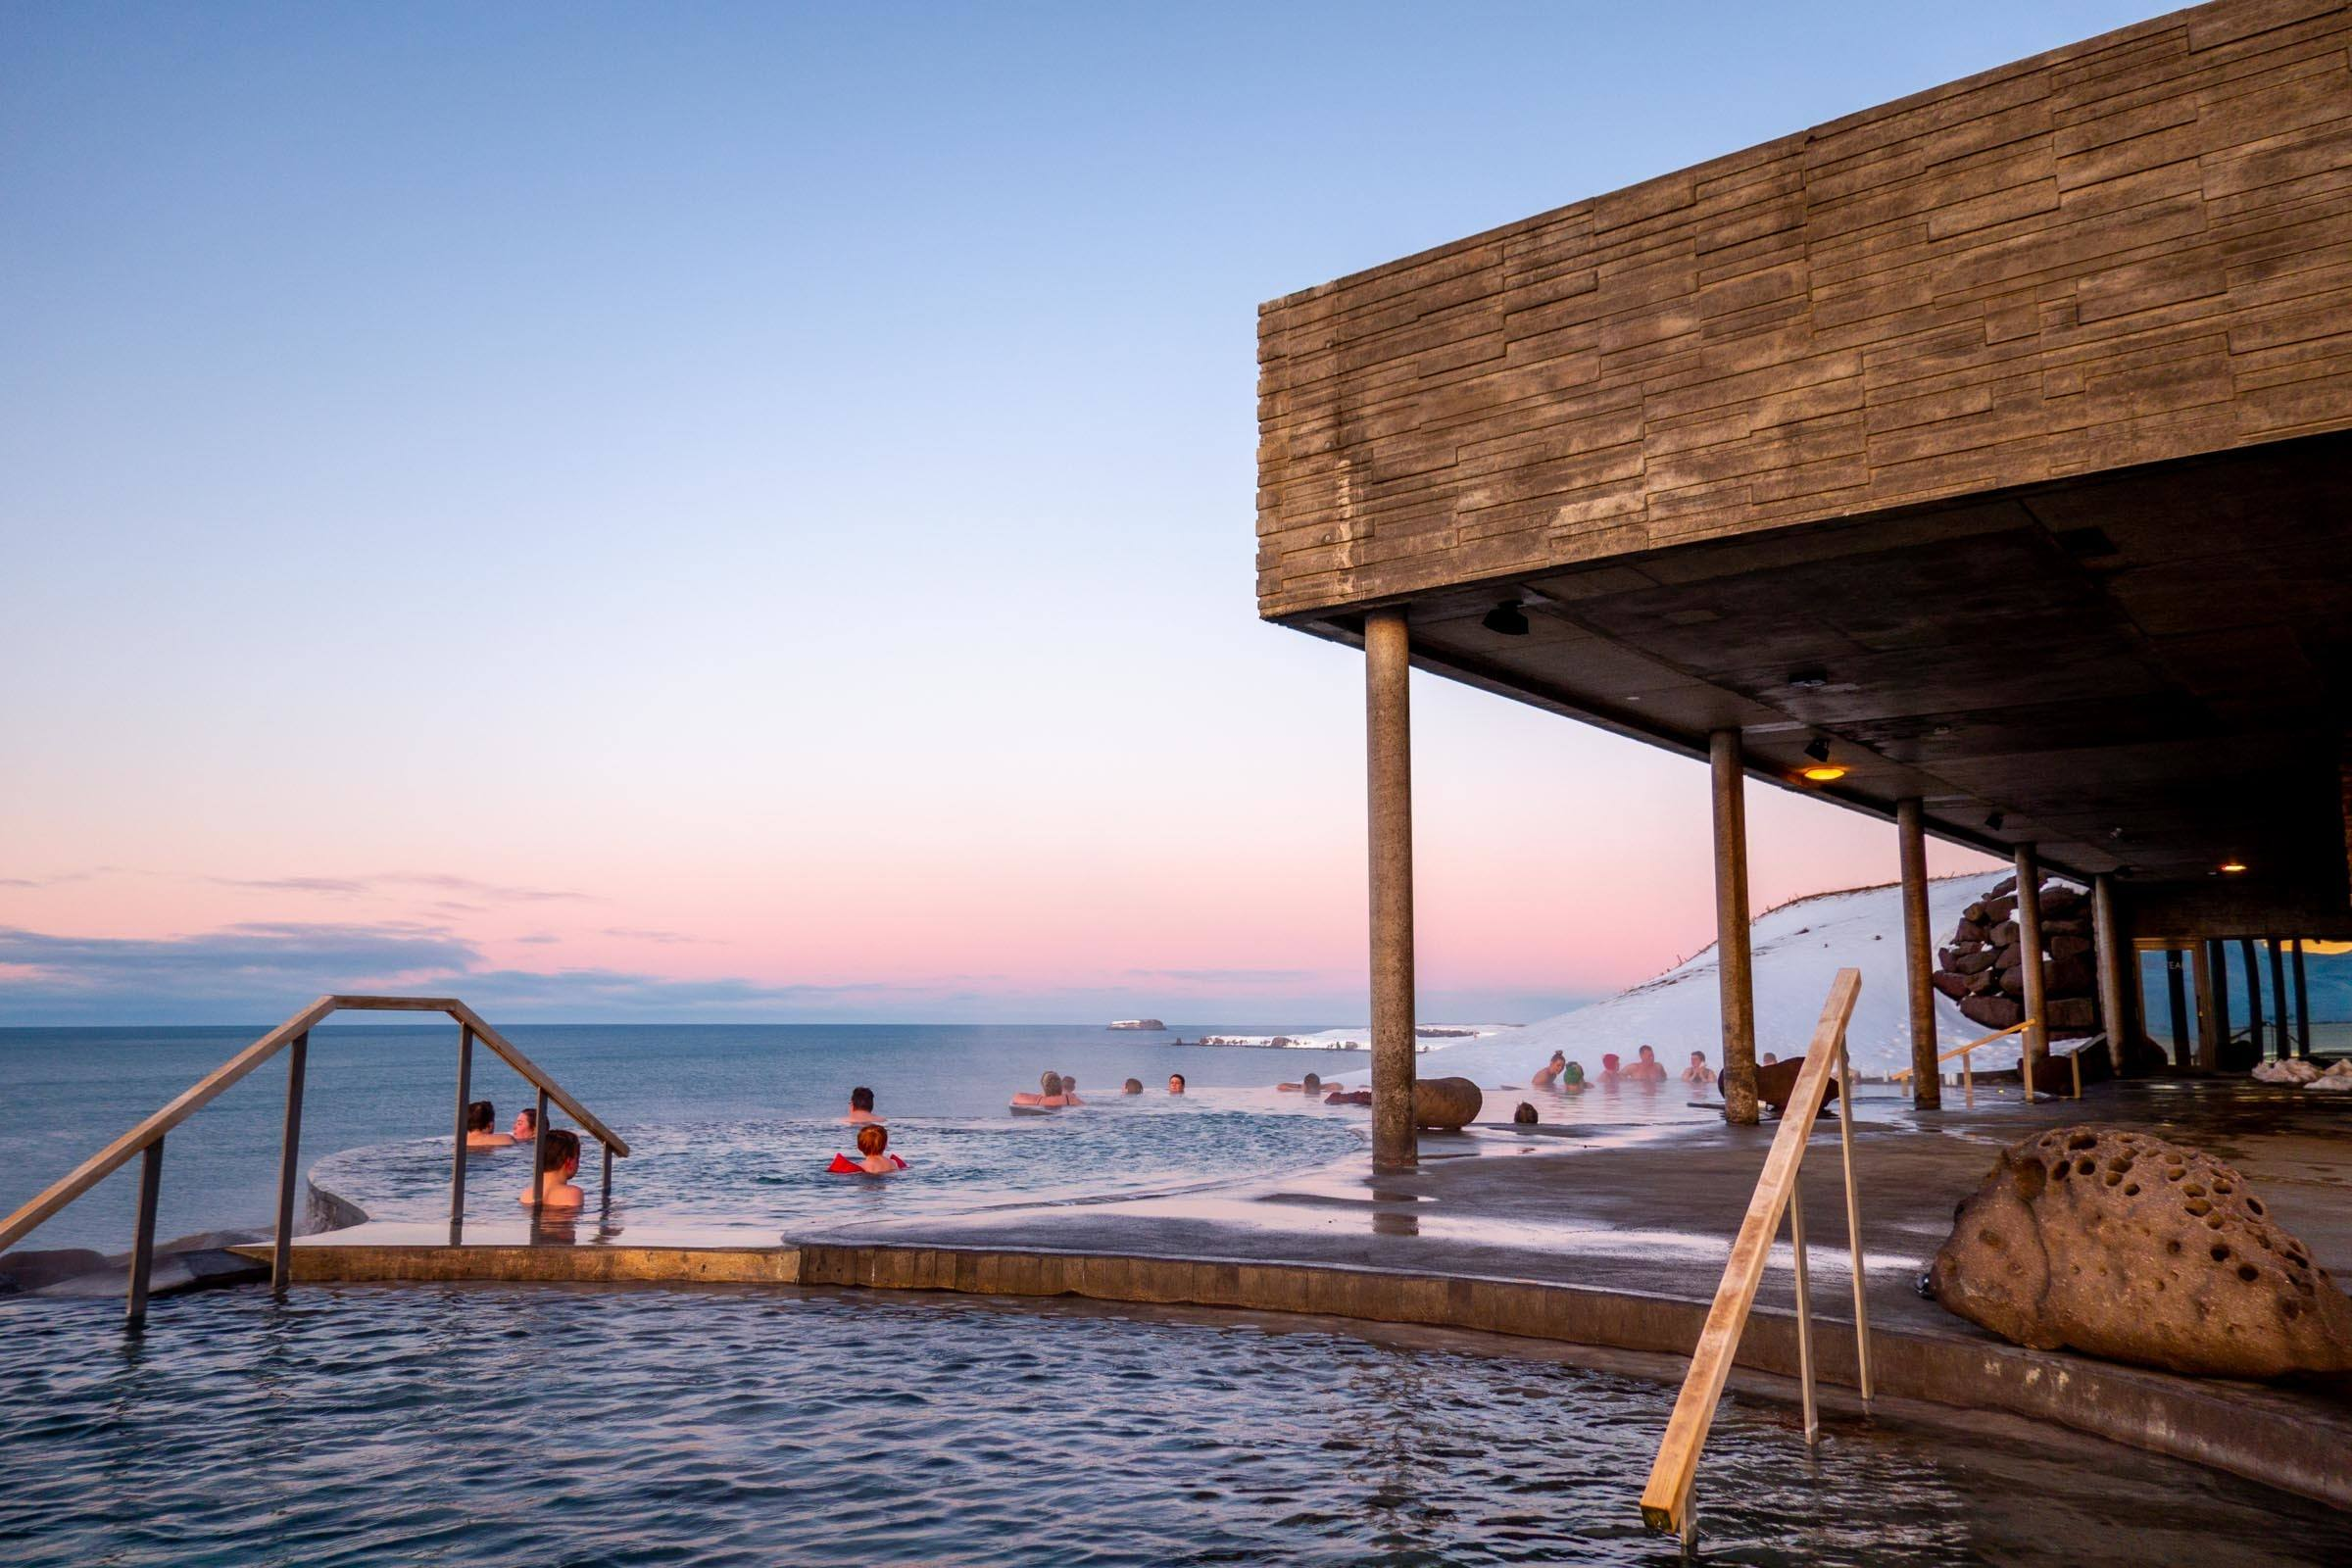 Infinity pools at the GeoSea Spa in Husavik